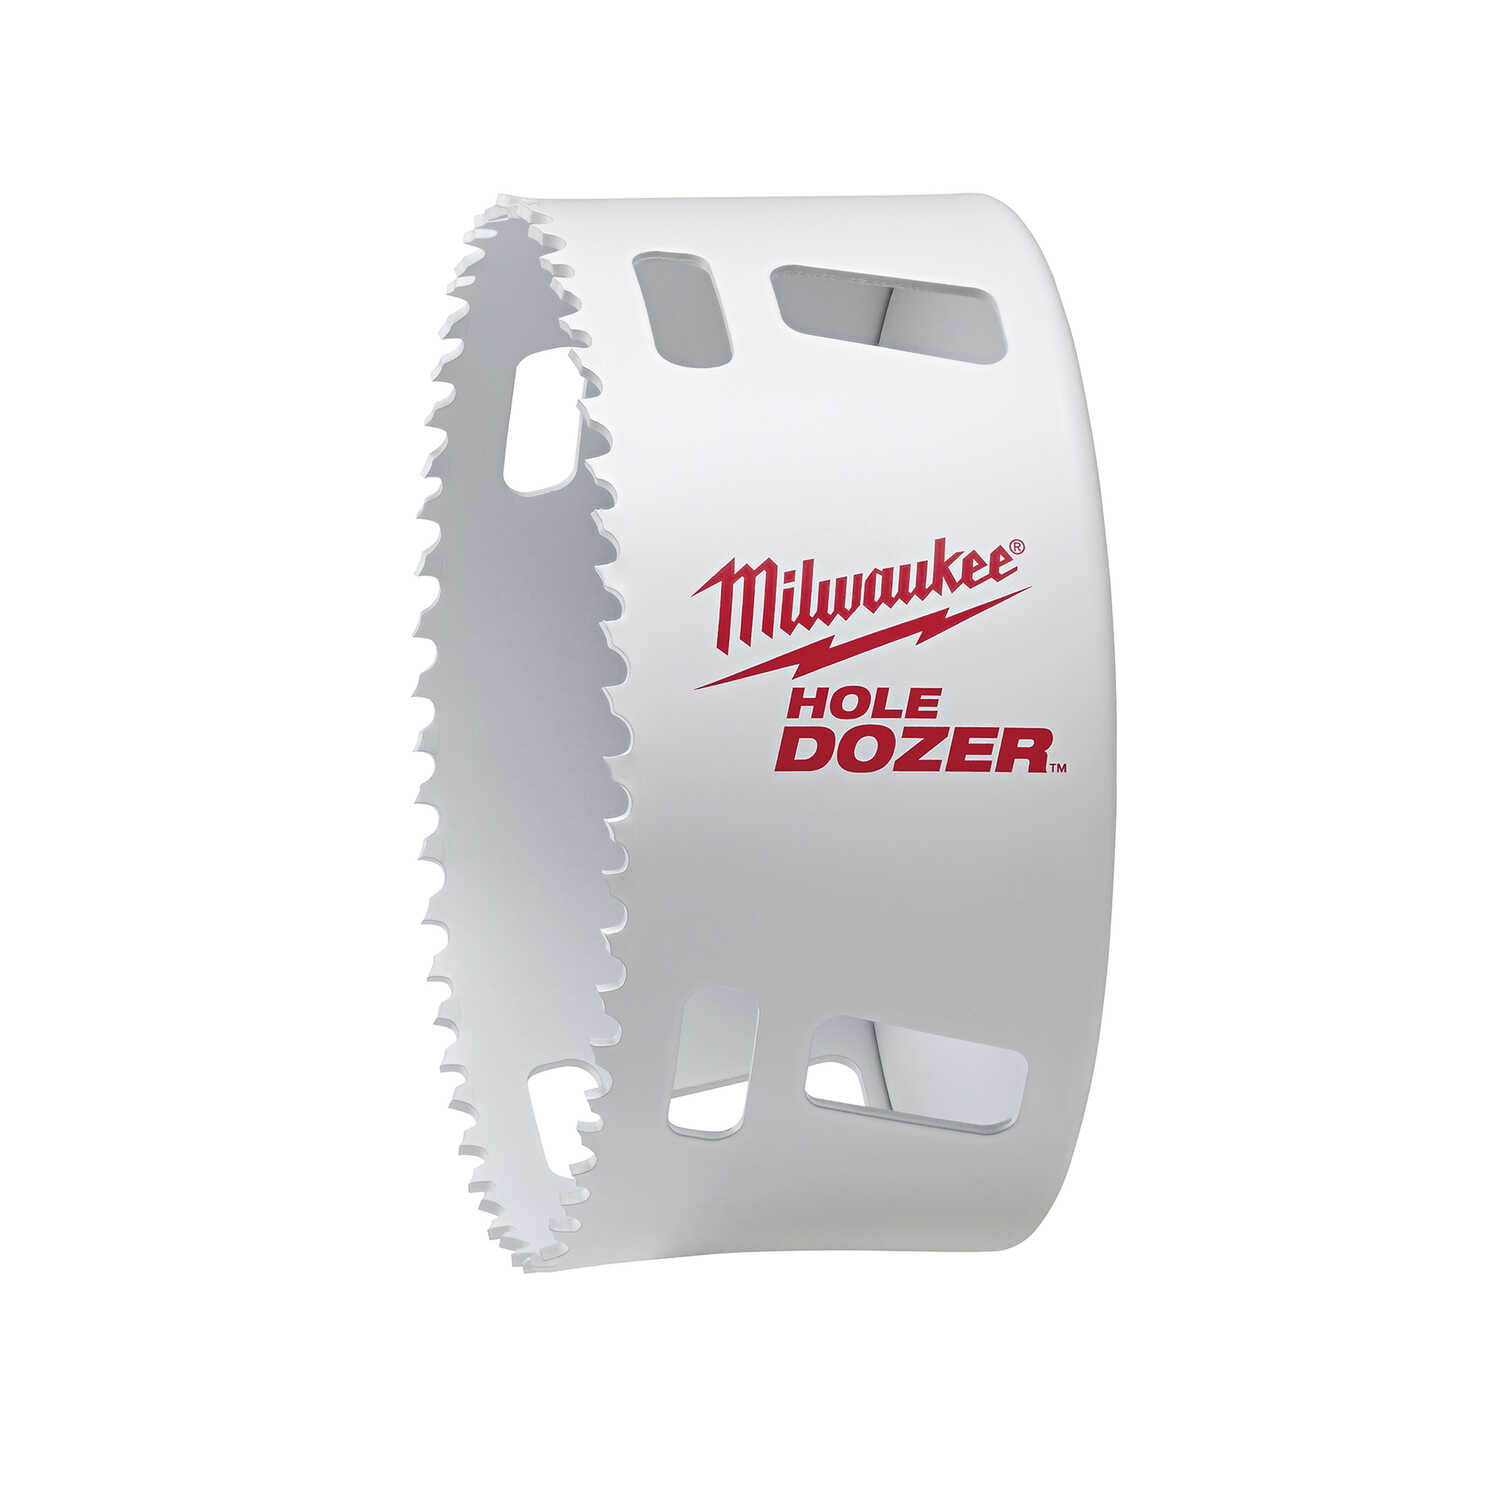 Milwaukee  Hole Dozer  4-1/8 in. Dia. x 1.9 in. L Bi-Metal  Hole Saw  1/4 in. 1 pc.